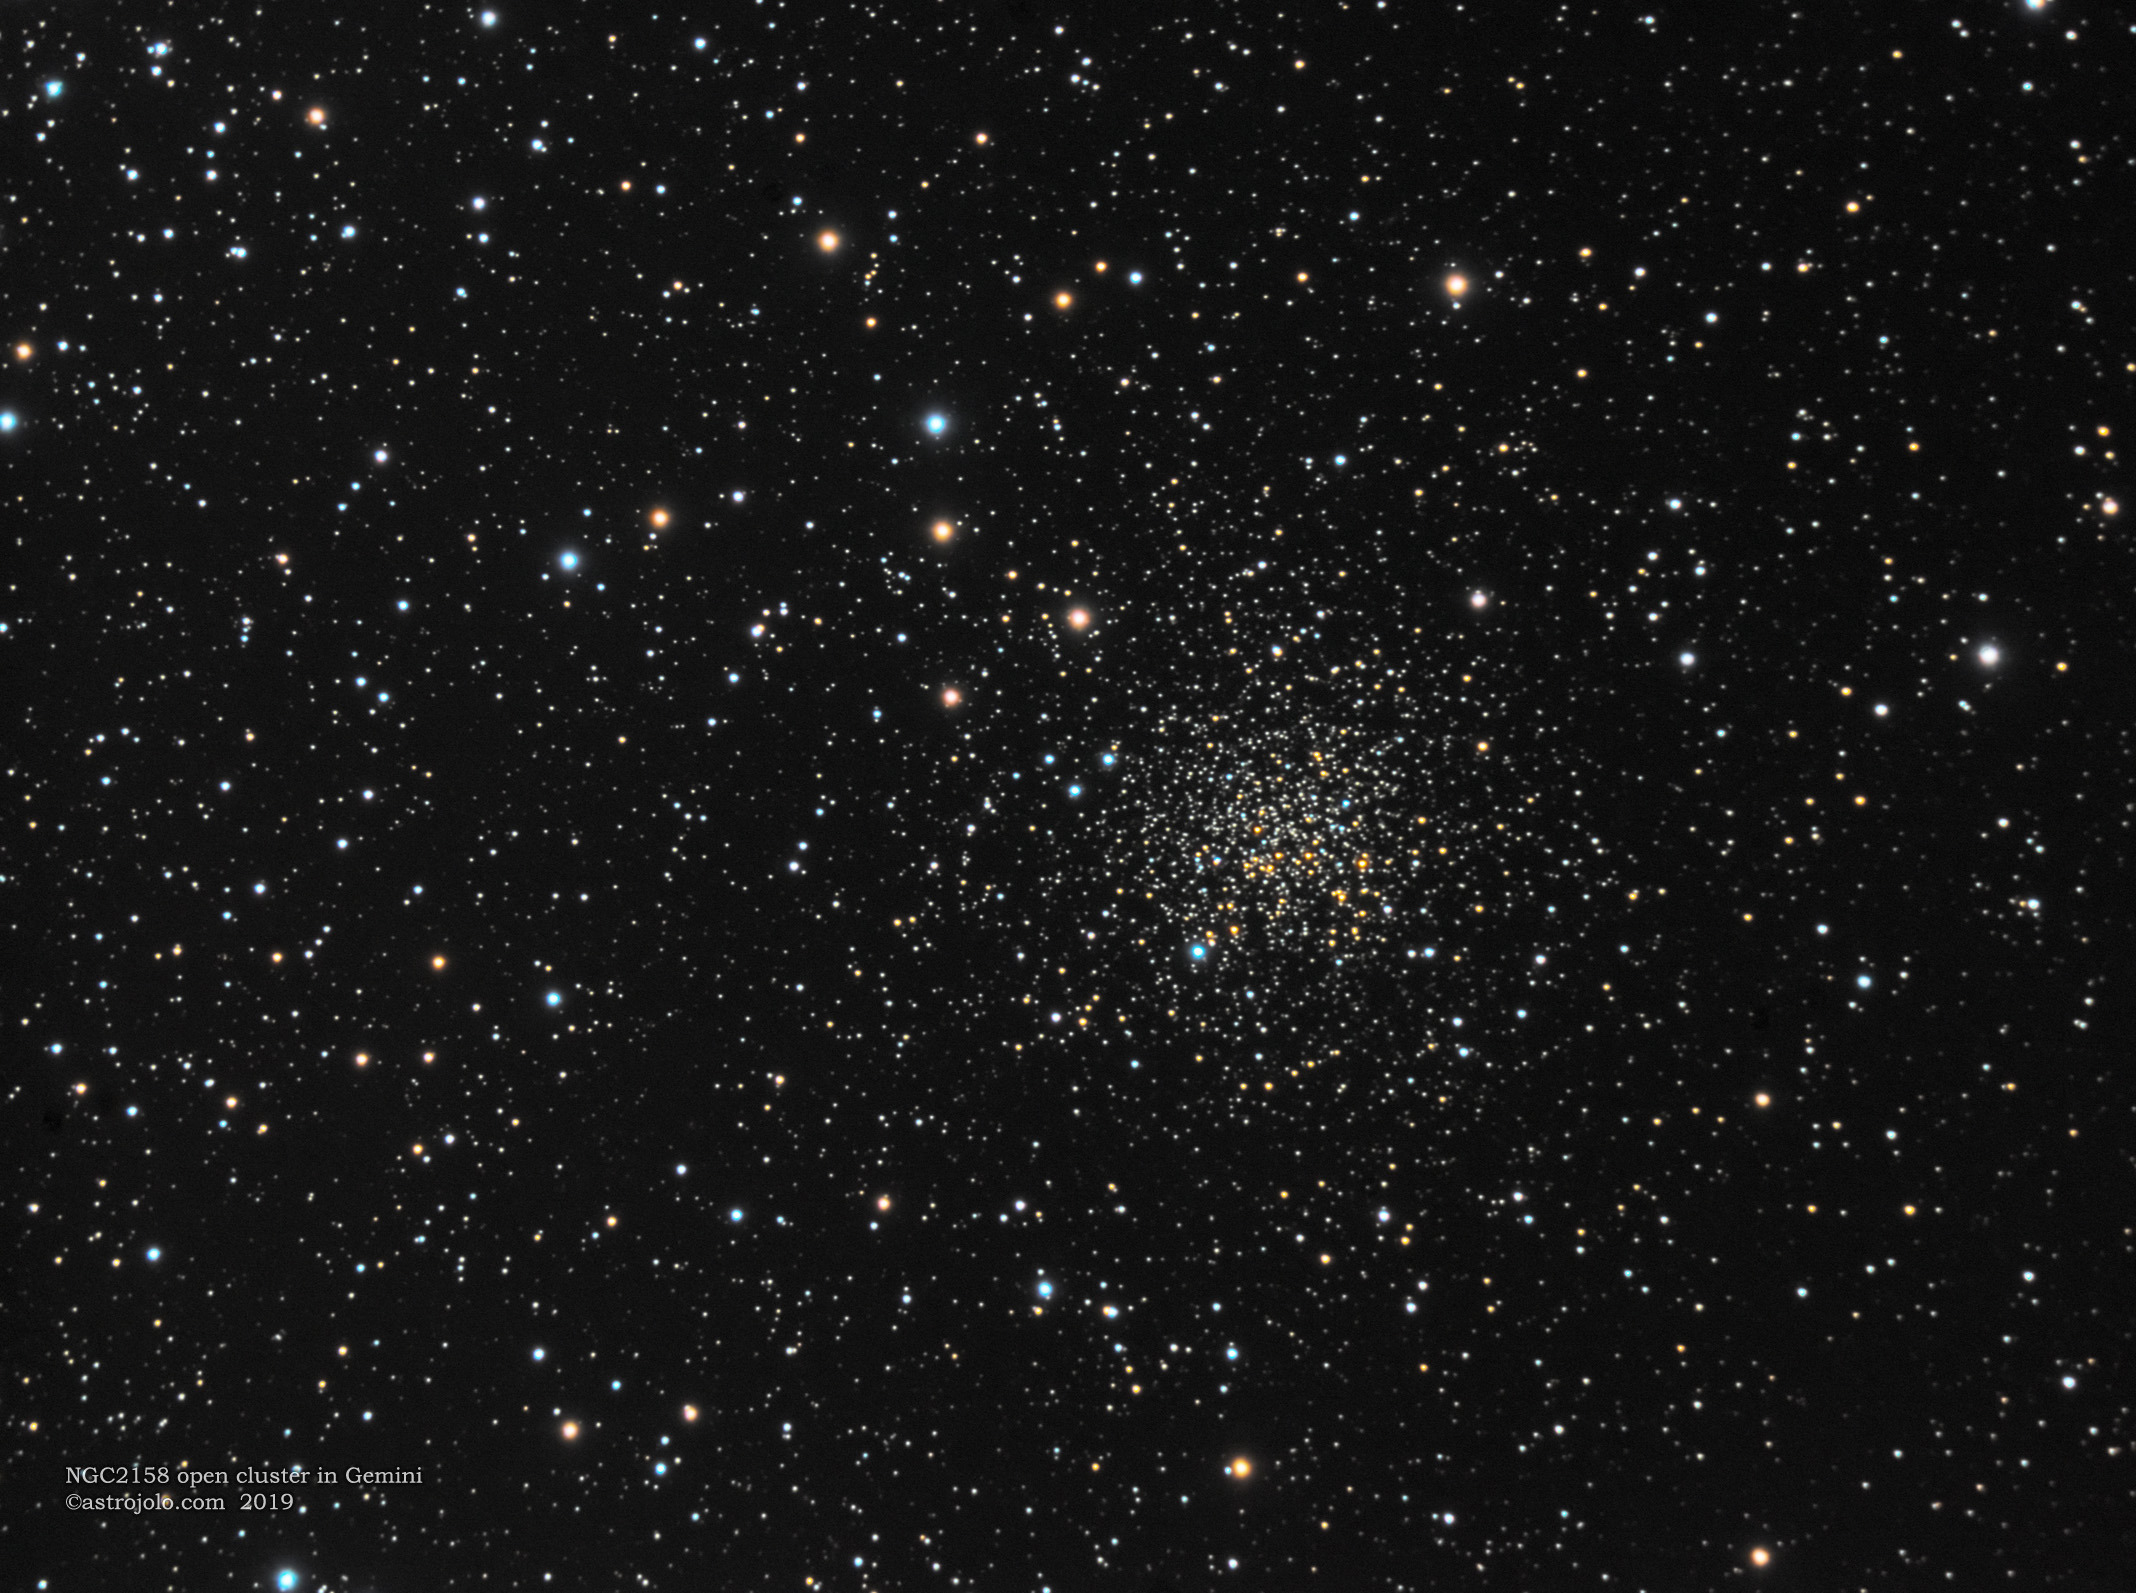 NGC2158 open cluster Date: 30.03, 01.04.2019 Location: Nieborowice, Poland Telescope: Meade ACF 10` Corrector: AP CCDT67 Camera: QHY163M, gain 100 Mount: SW EQ6 Guiding: SW 80/400 + ASI290MM Exposure: LRGB 80:40:30:40 x 30 seconds Conditions: suburban sky, seeing good, transparency good